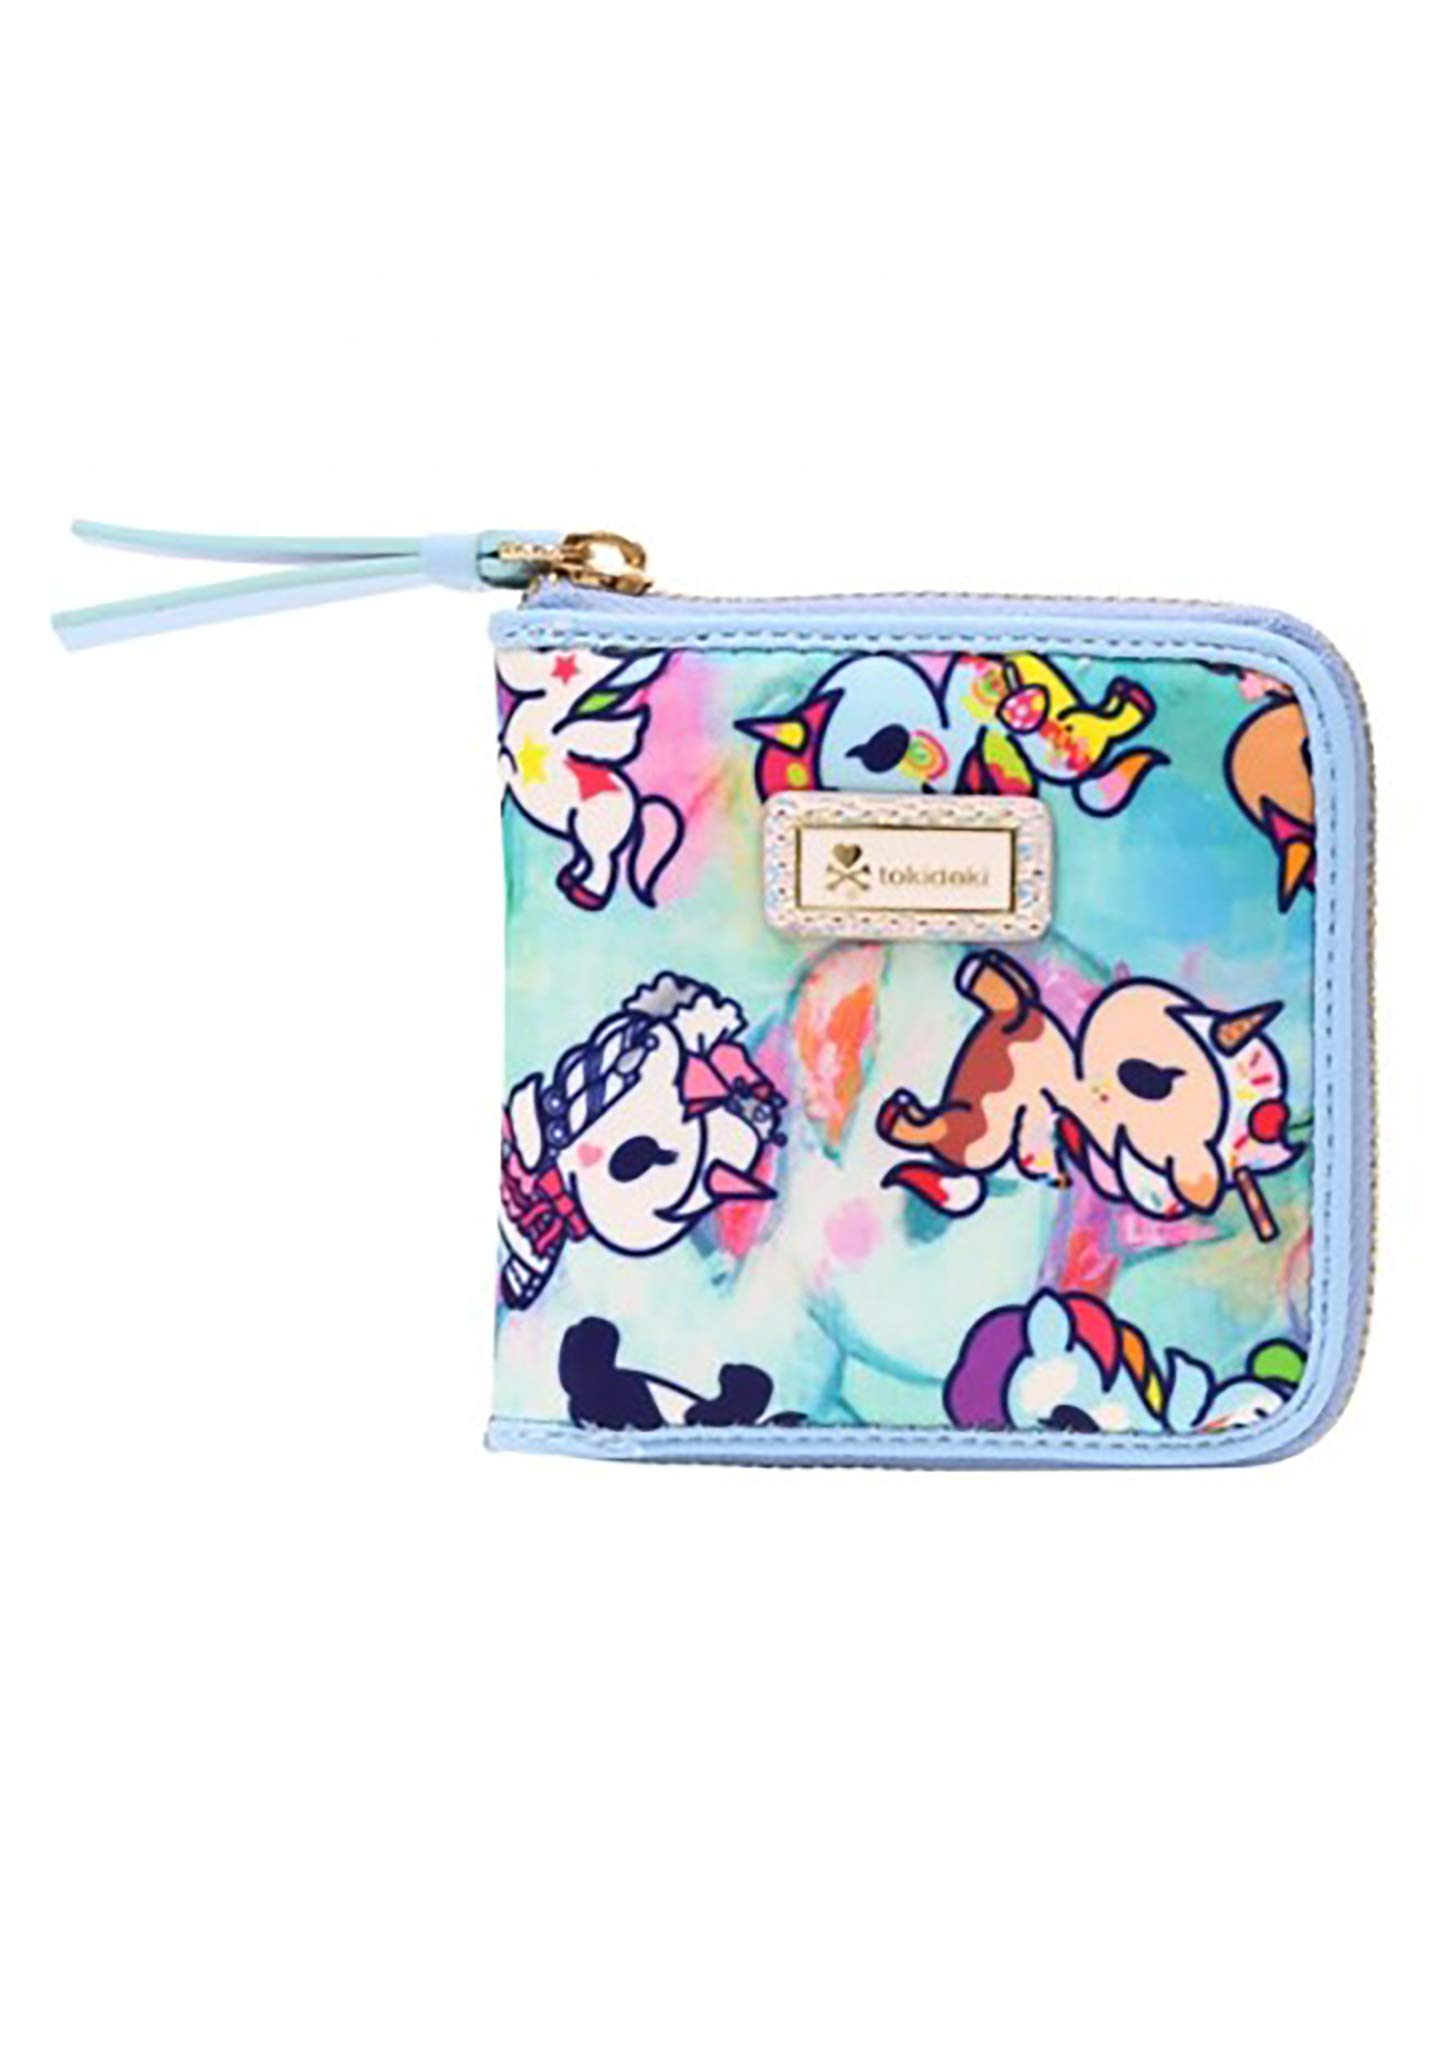 Tokidoki Watercolor Paradise Small Zip Around Wallet in Blue/Multi